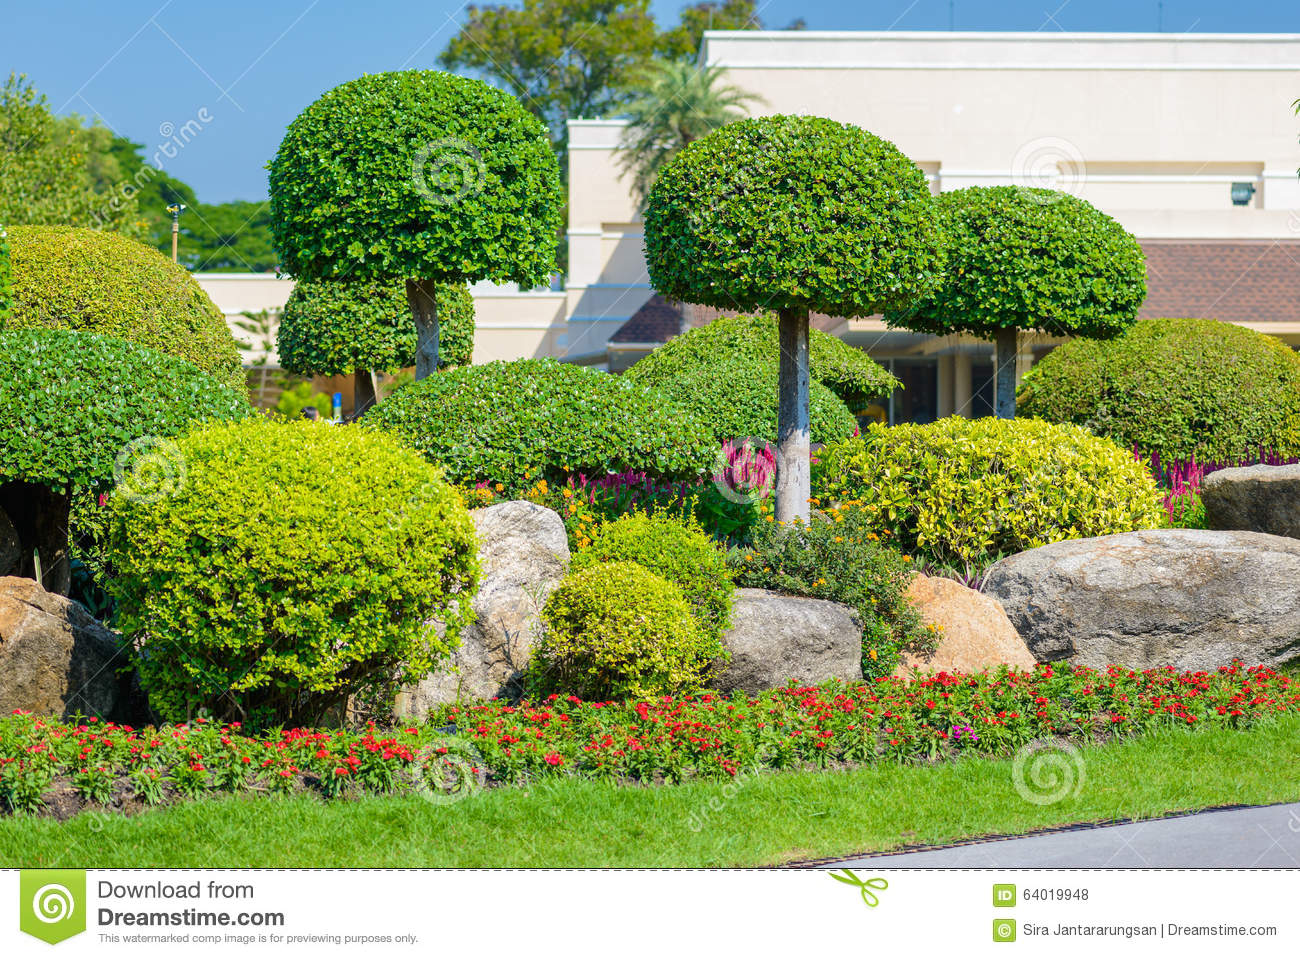 Gardening and landscaping stock photo image 64019948 - Decorative small trees for landscaping ...